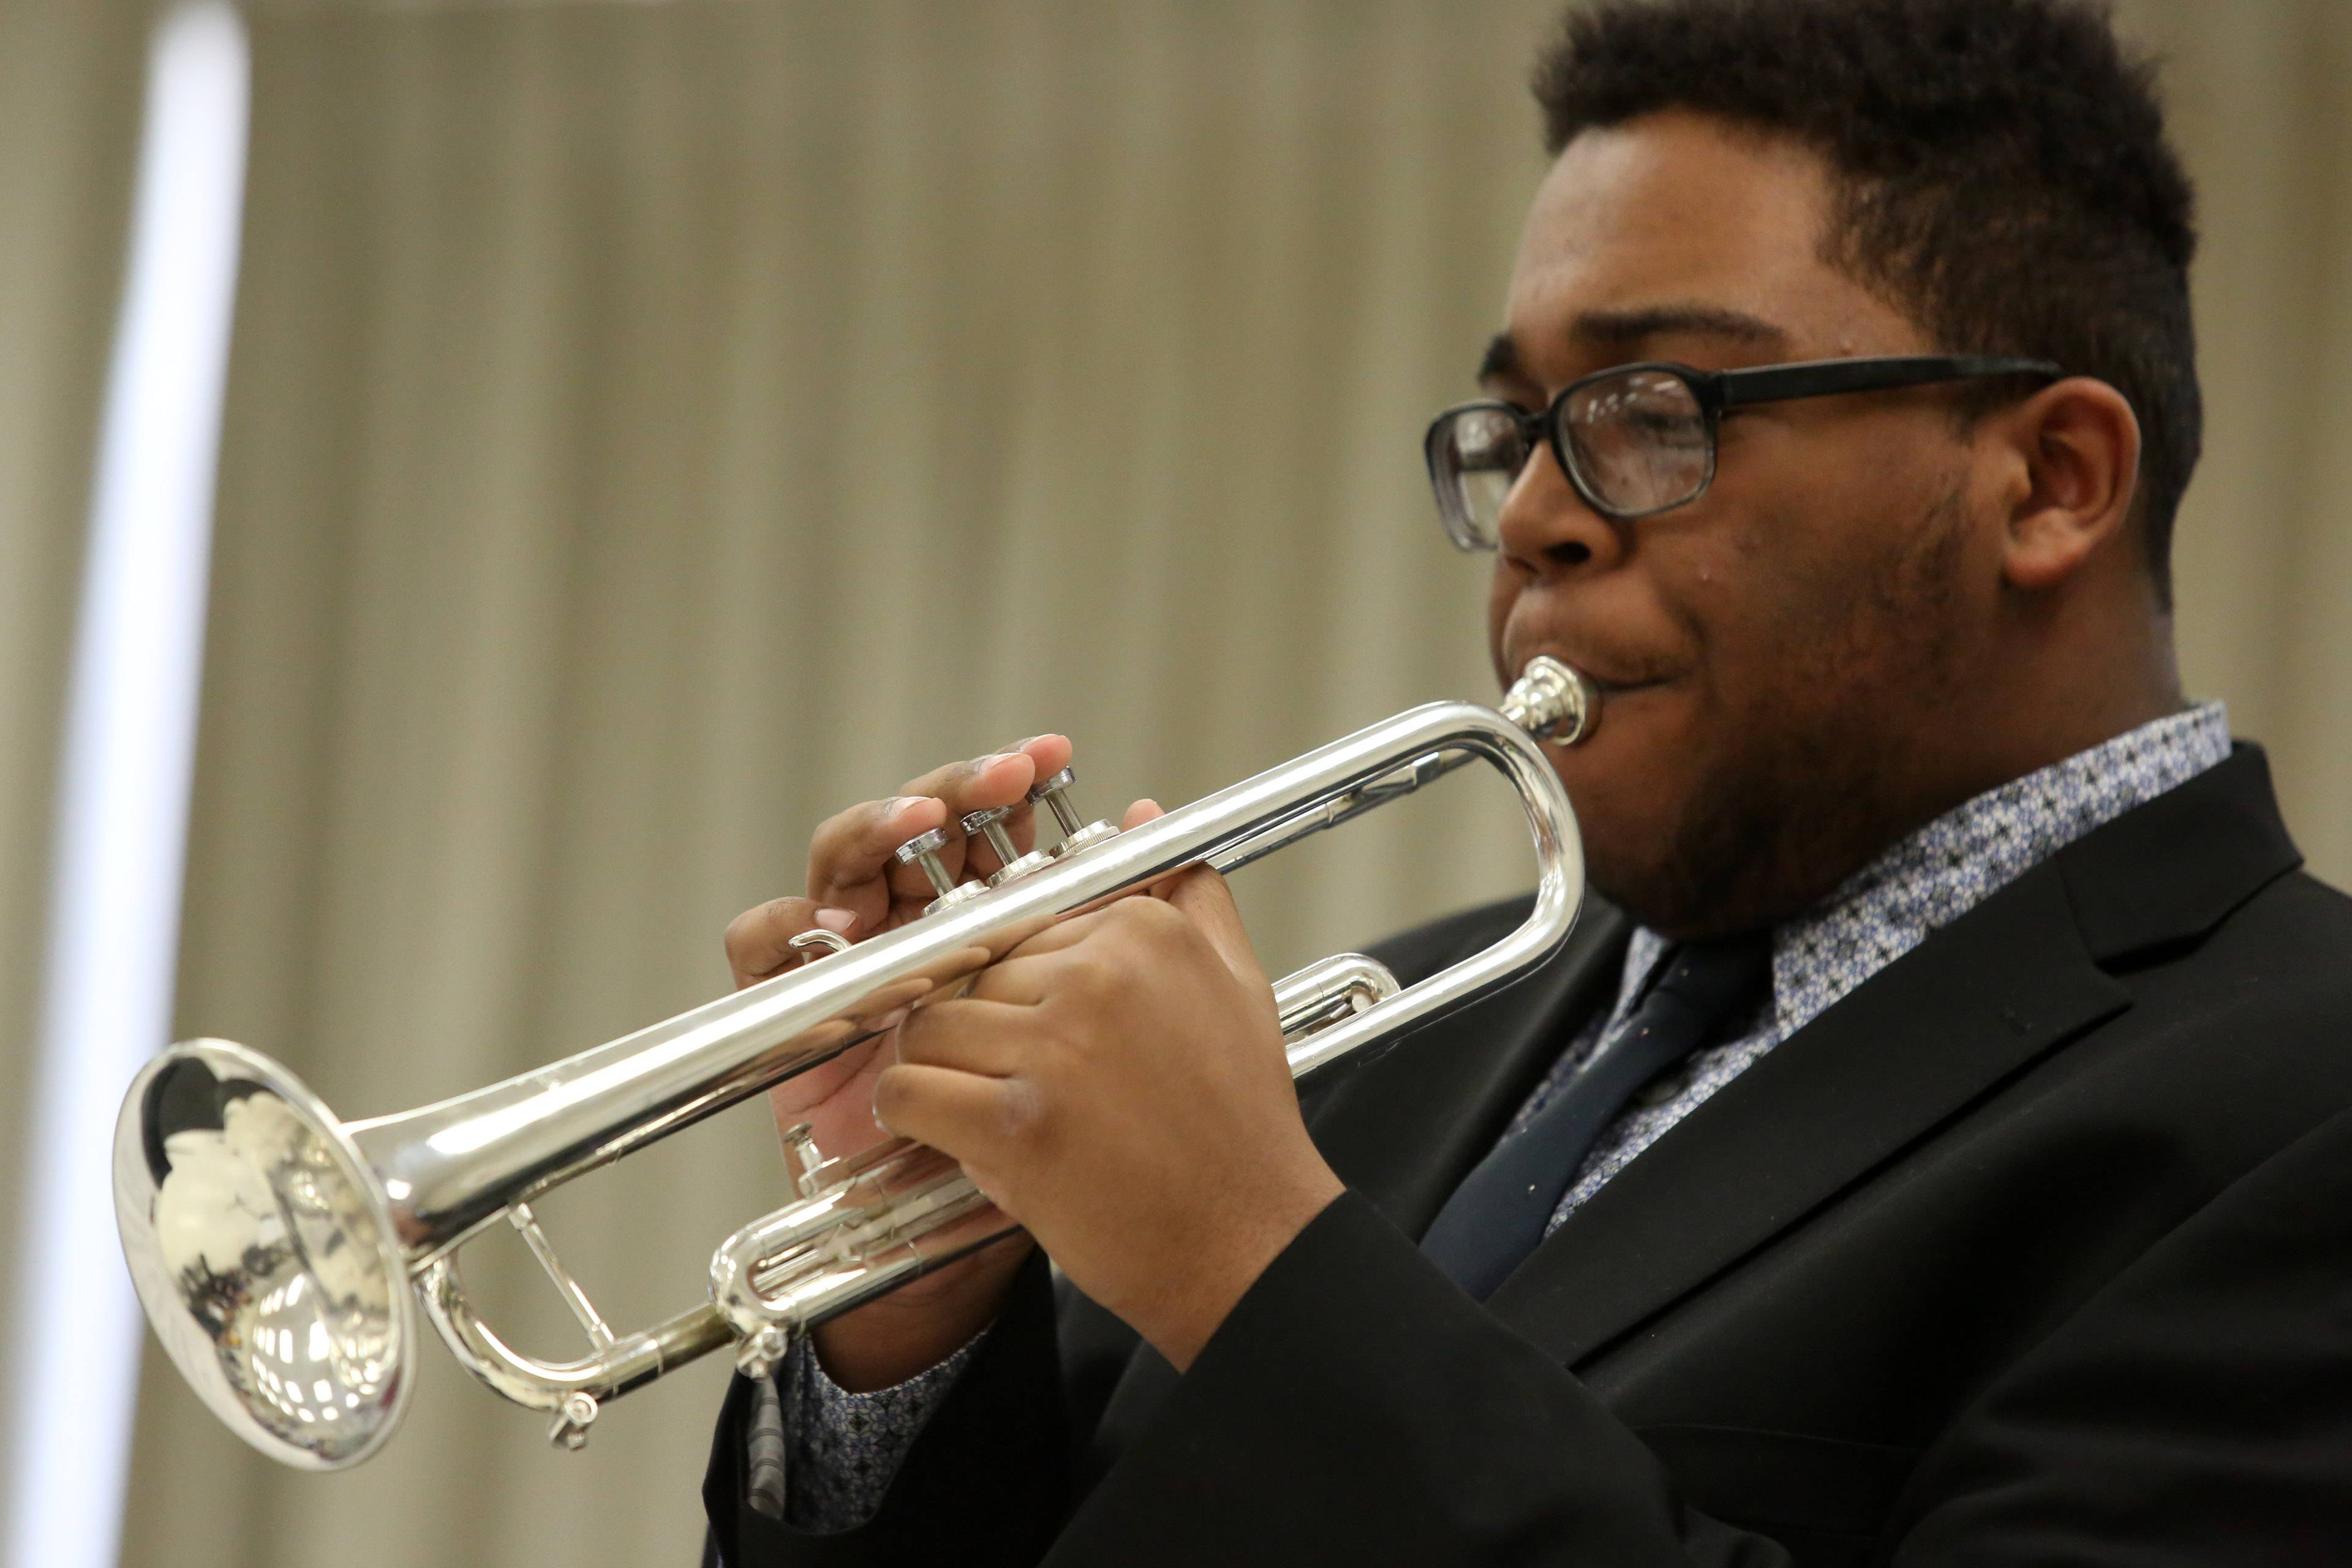 Nick Alleyne plays the trumpet in Warren High School's jazz combo, directed by Chris Madsen, at the 29th annual Jazz in the Meadows program on Saturday in the art room at Rolling Meadows High School.